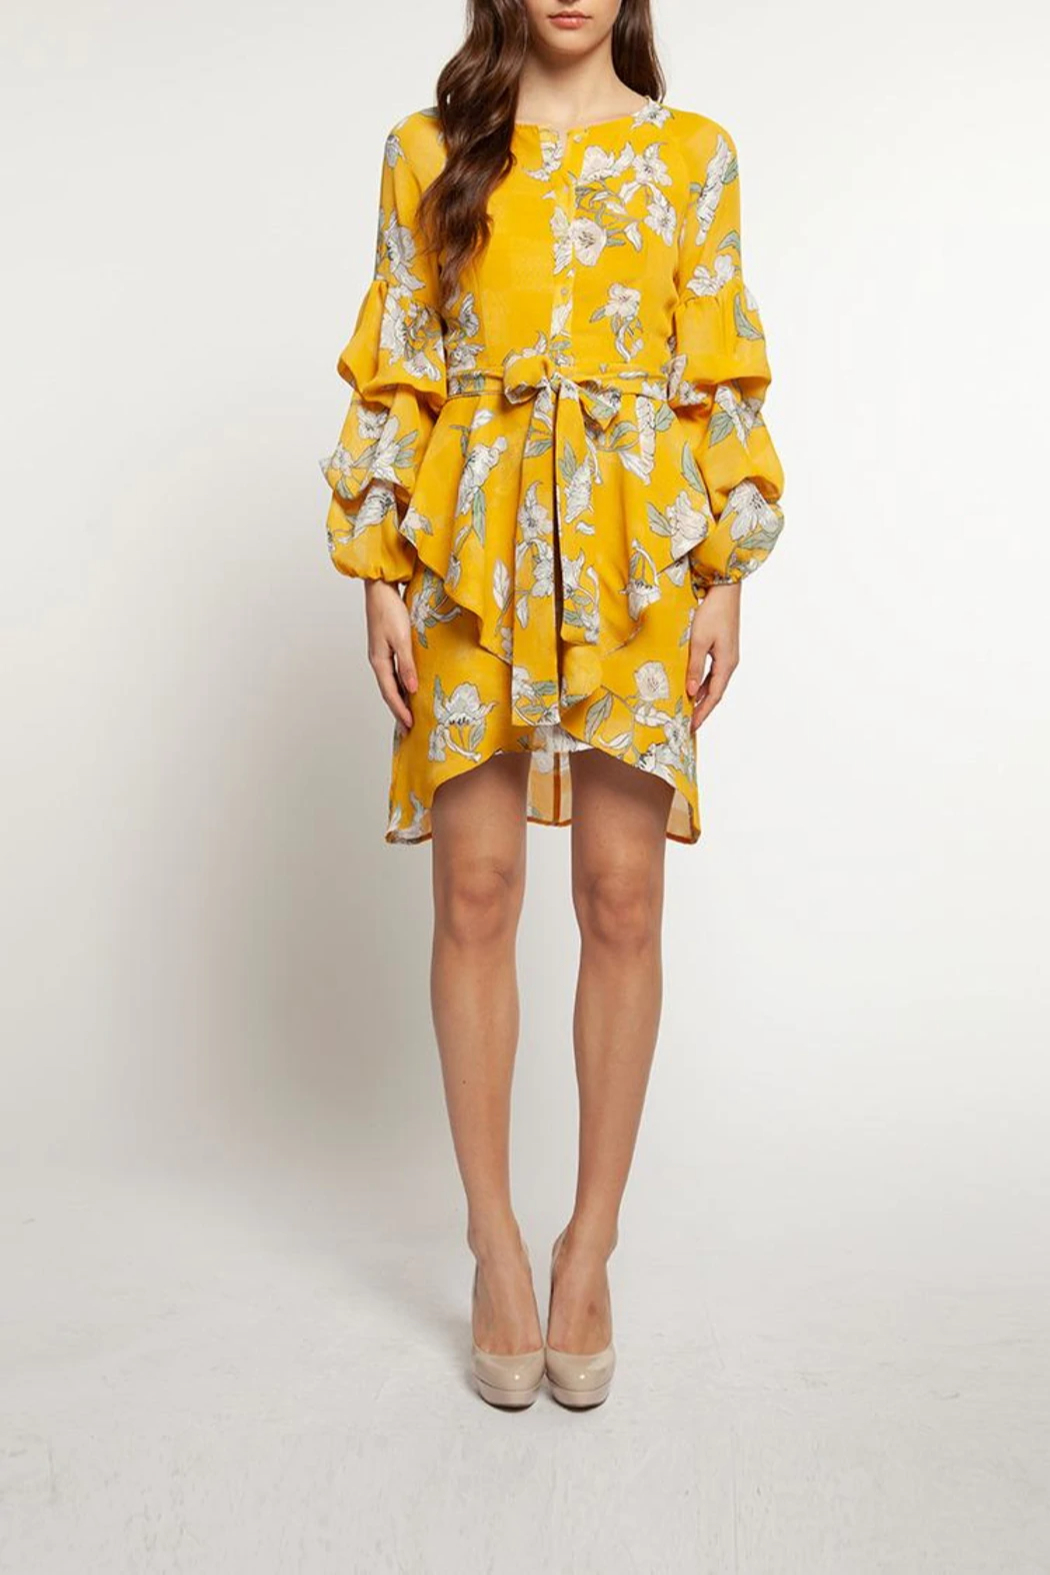 Dex Long Sleeve Floral Dress with Elastic Tie Waist, Bouffant Sleeve Detail and Buttondown Neckline - Main Image